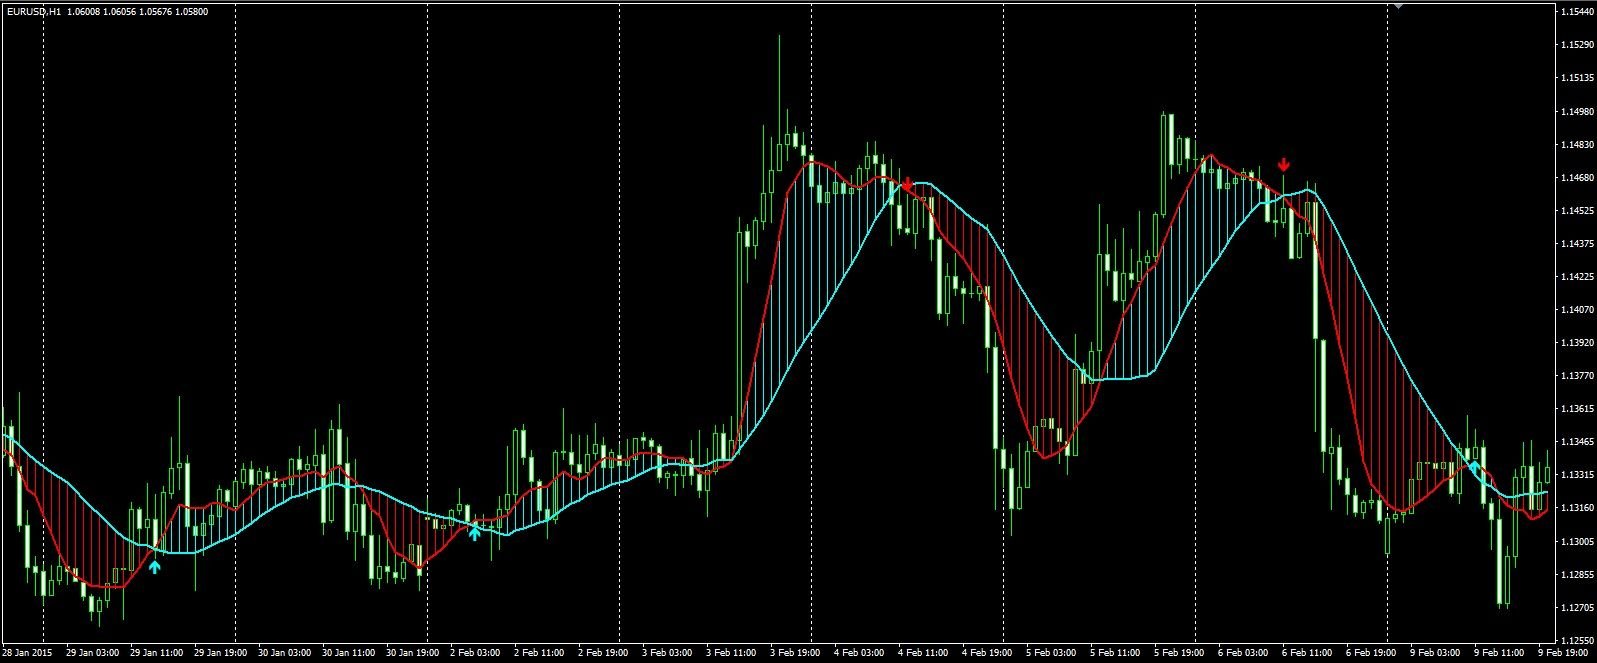 Forex Ma Crossover With Rsi Filter Alerts Indicator Forex Crossover